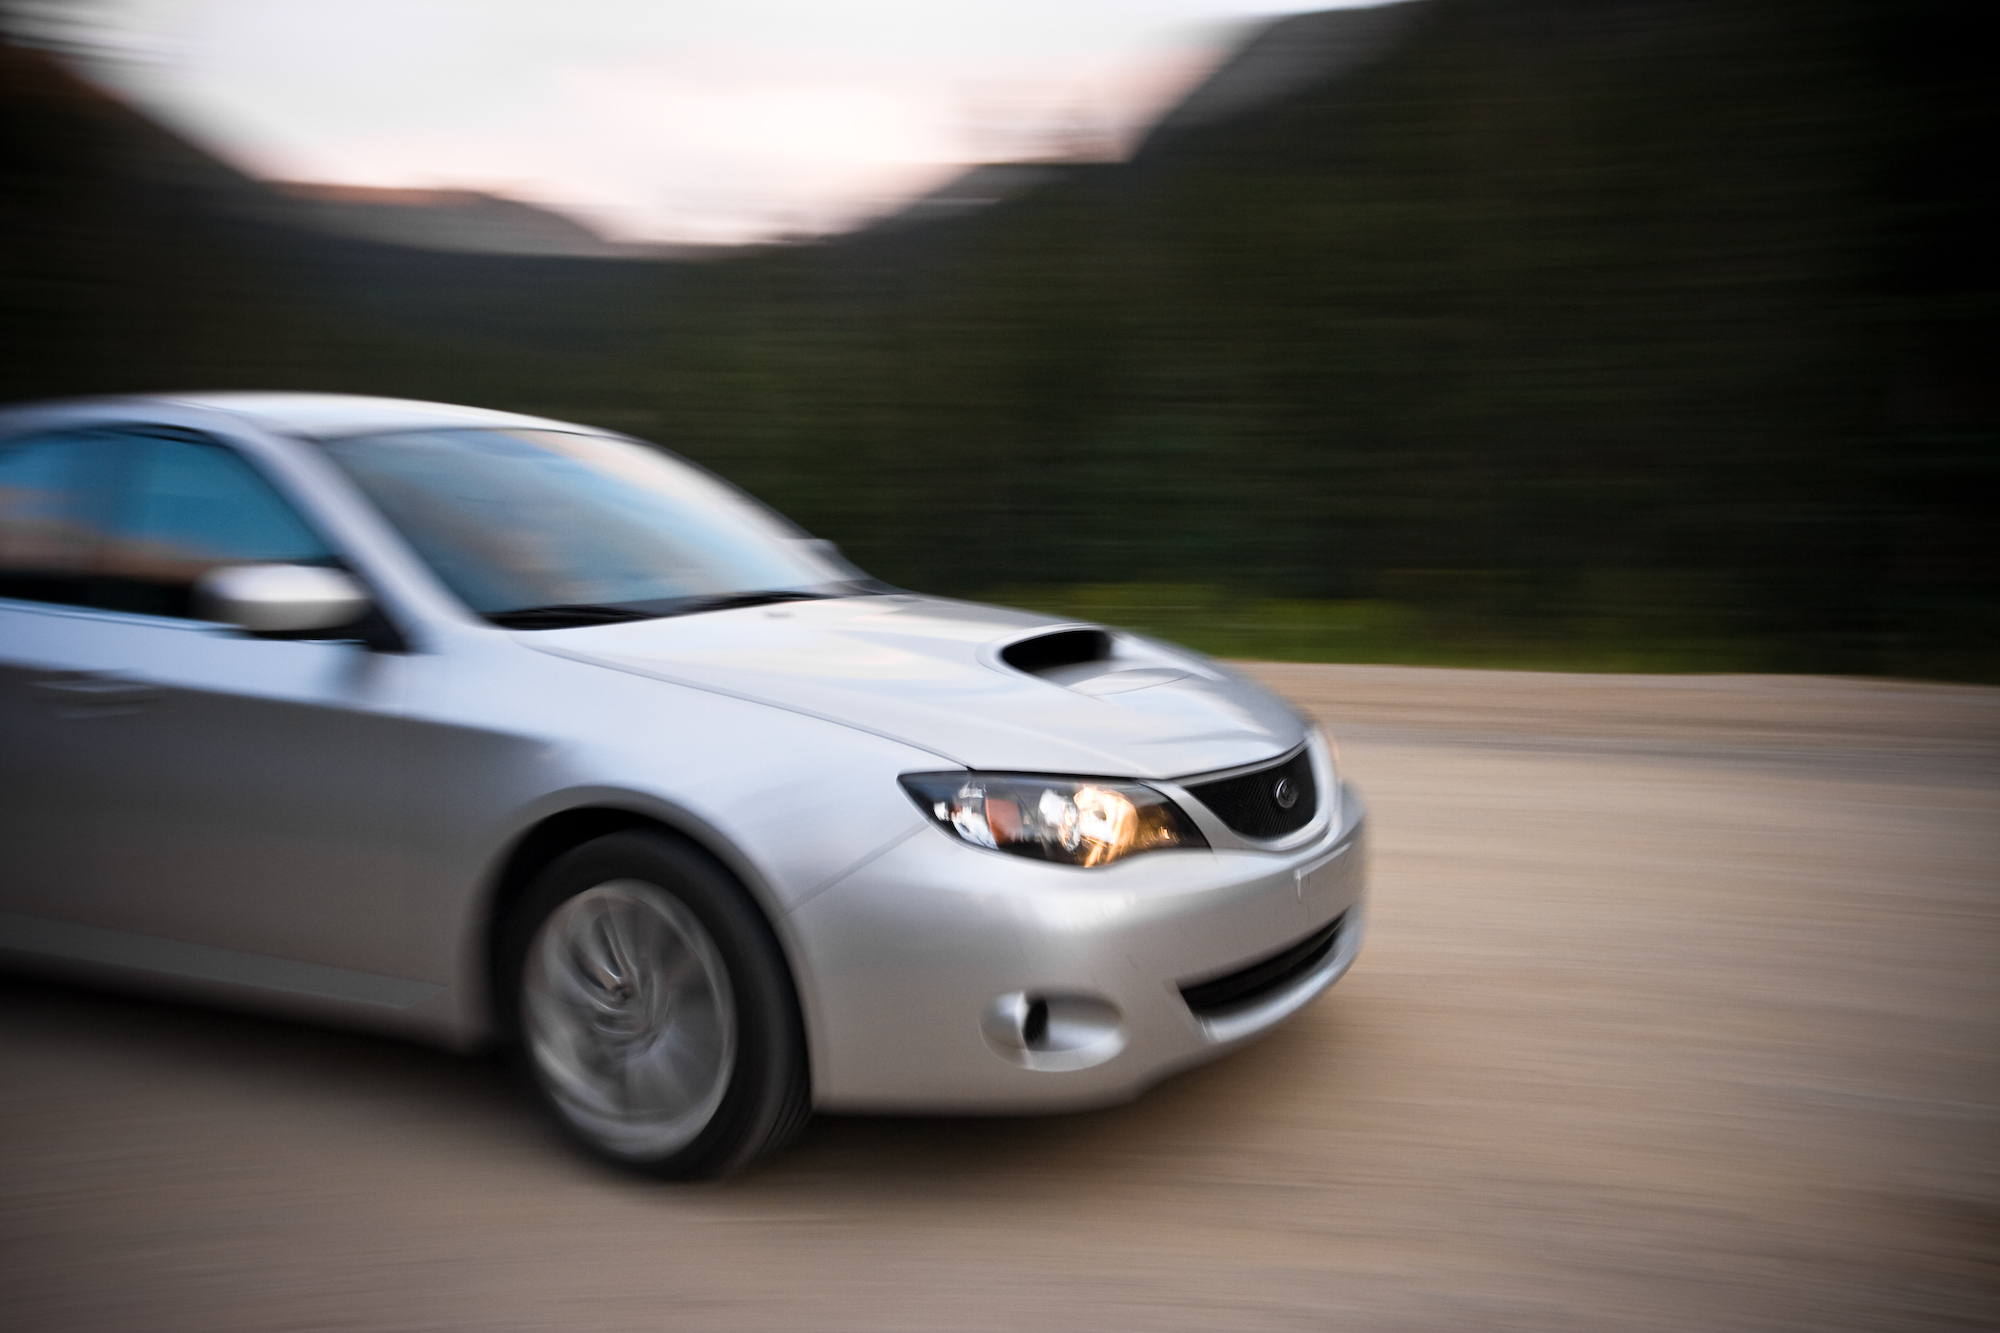 Zoom Zoom, Blur, Car, Dirt, Fast, HQ Photo